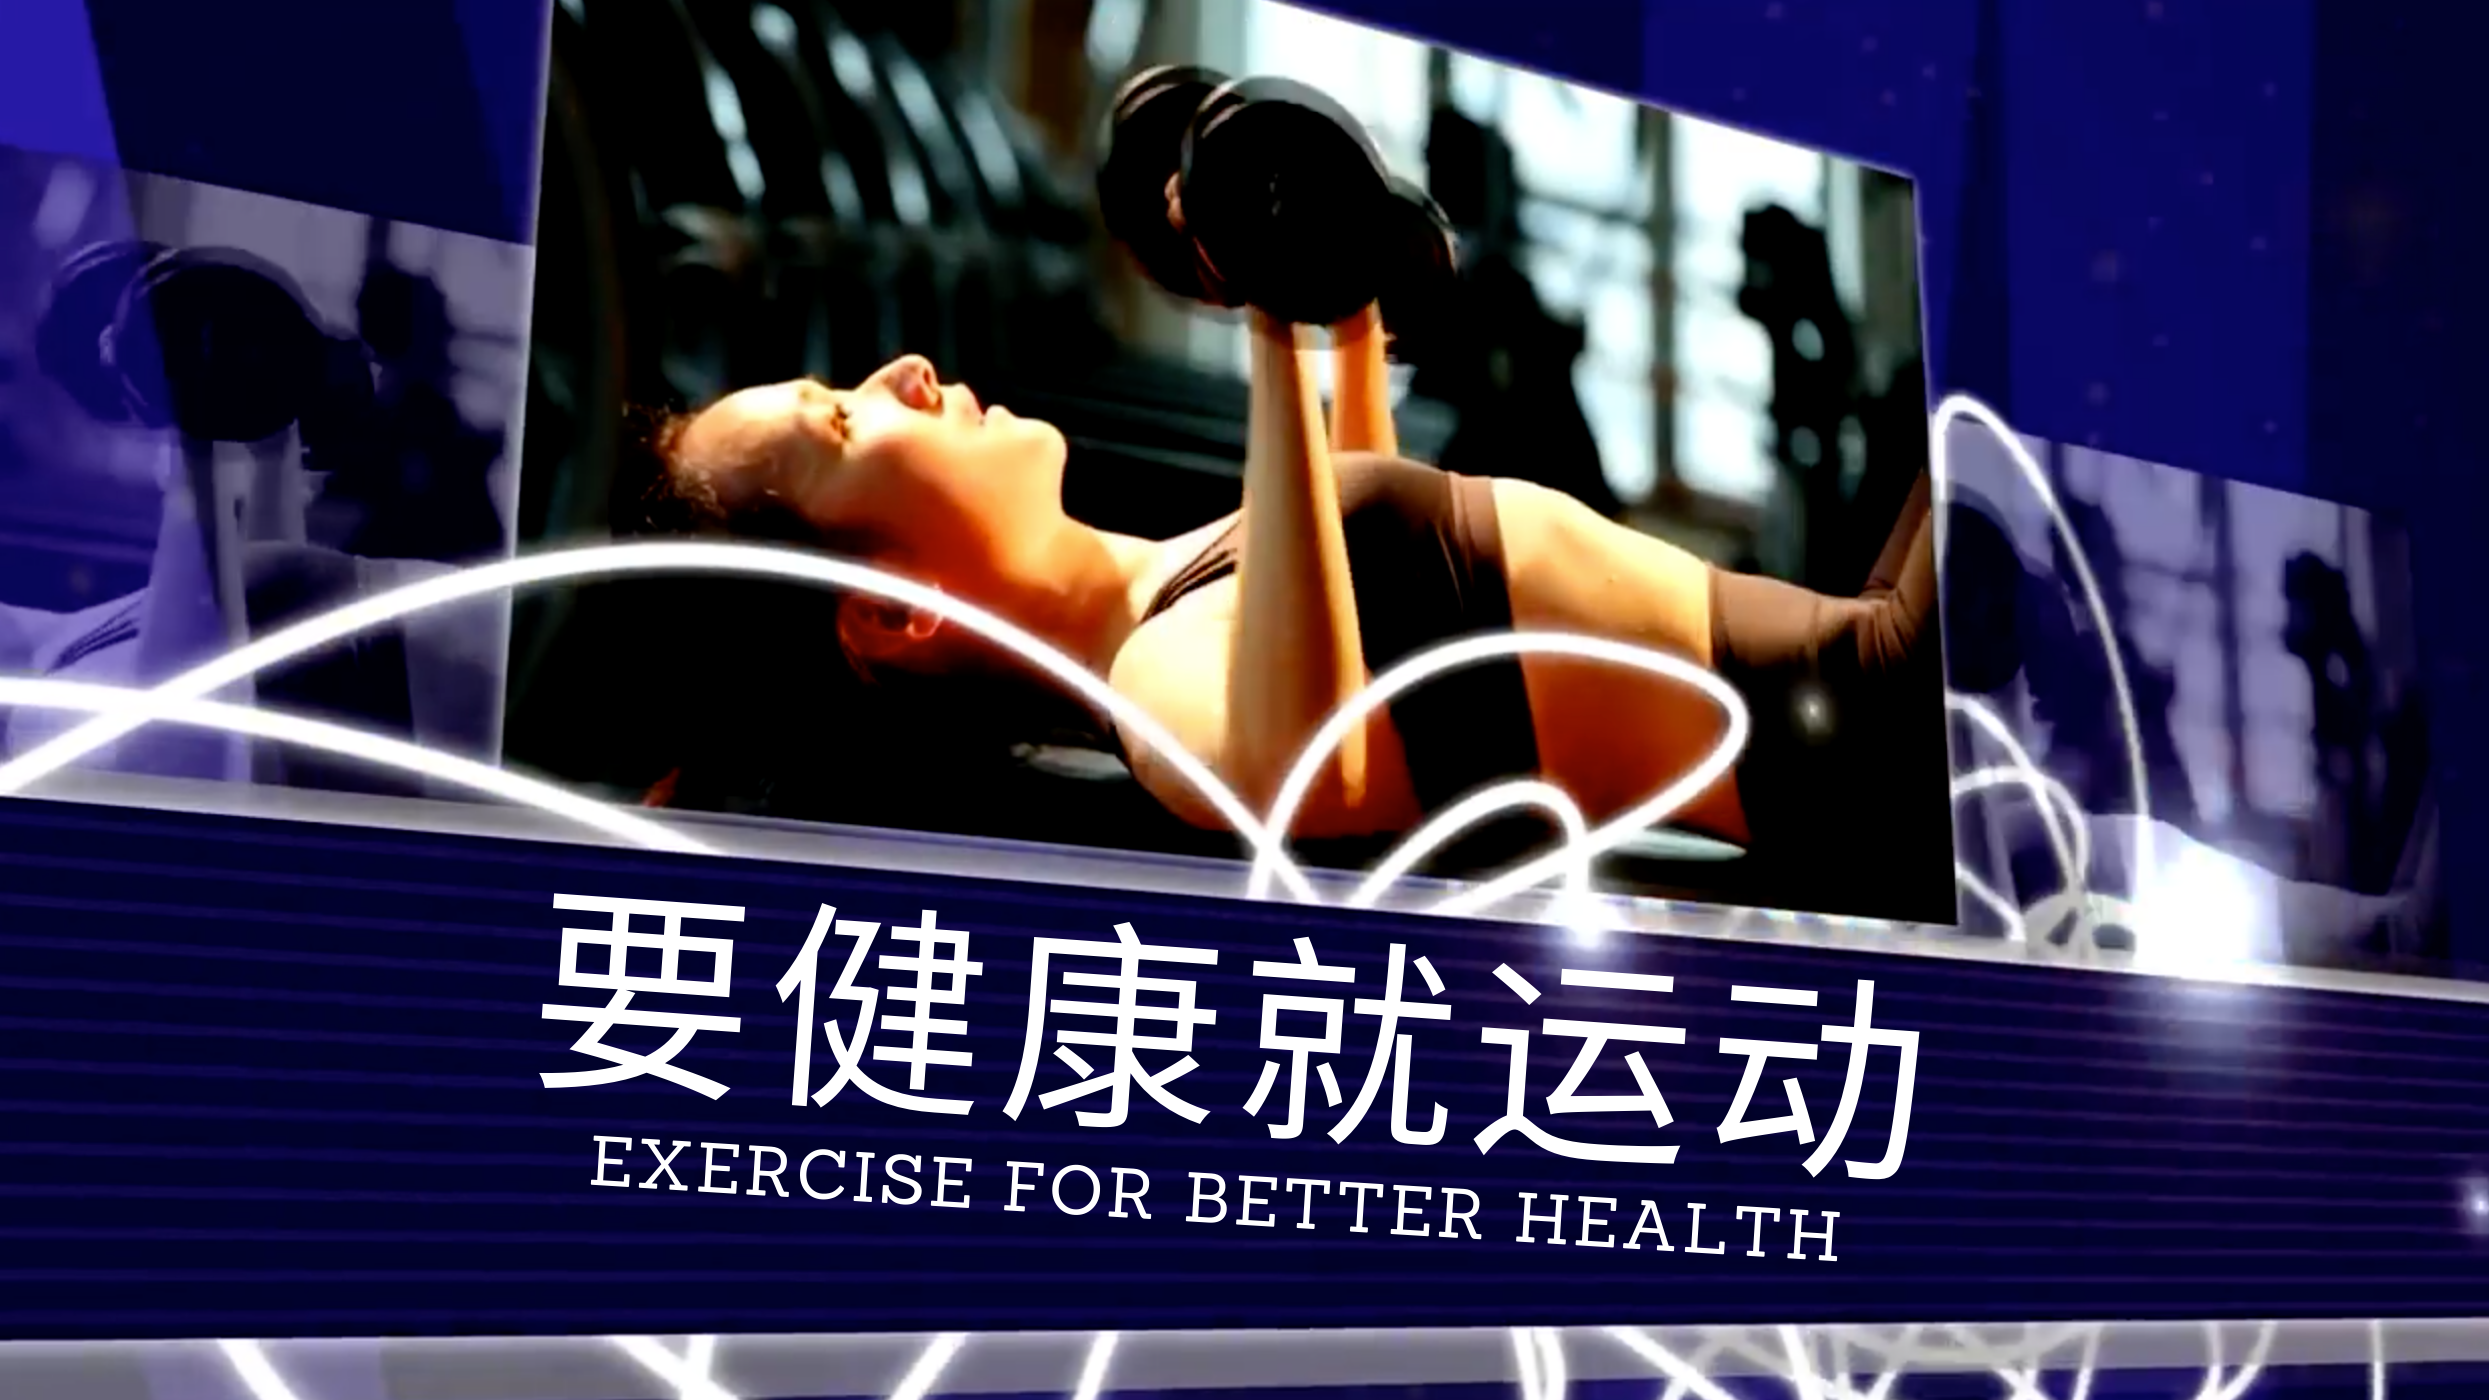 要健康就运动 Exercise for Better Health